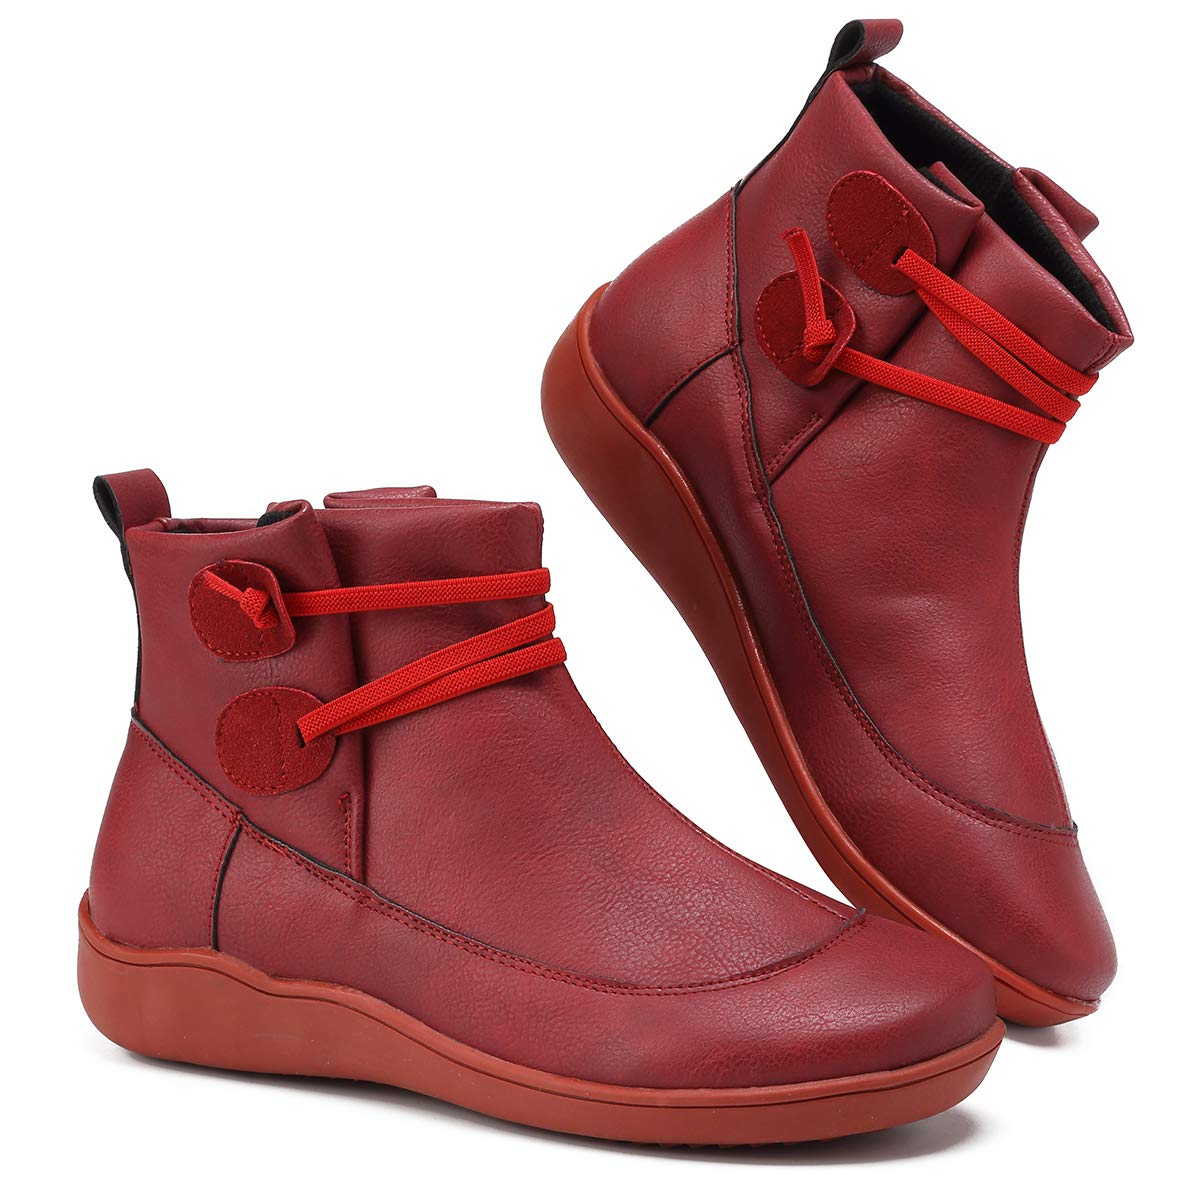 Womens Arch Support Boots Sunkessety Fashion Lace Up Side Zipper Ankle Booties Comfortable Leather Flat Heel Boots